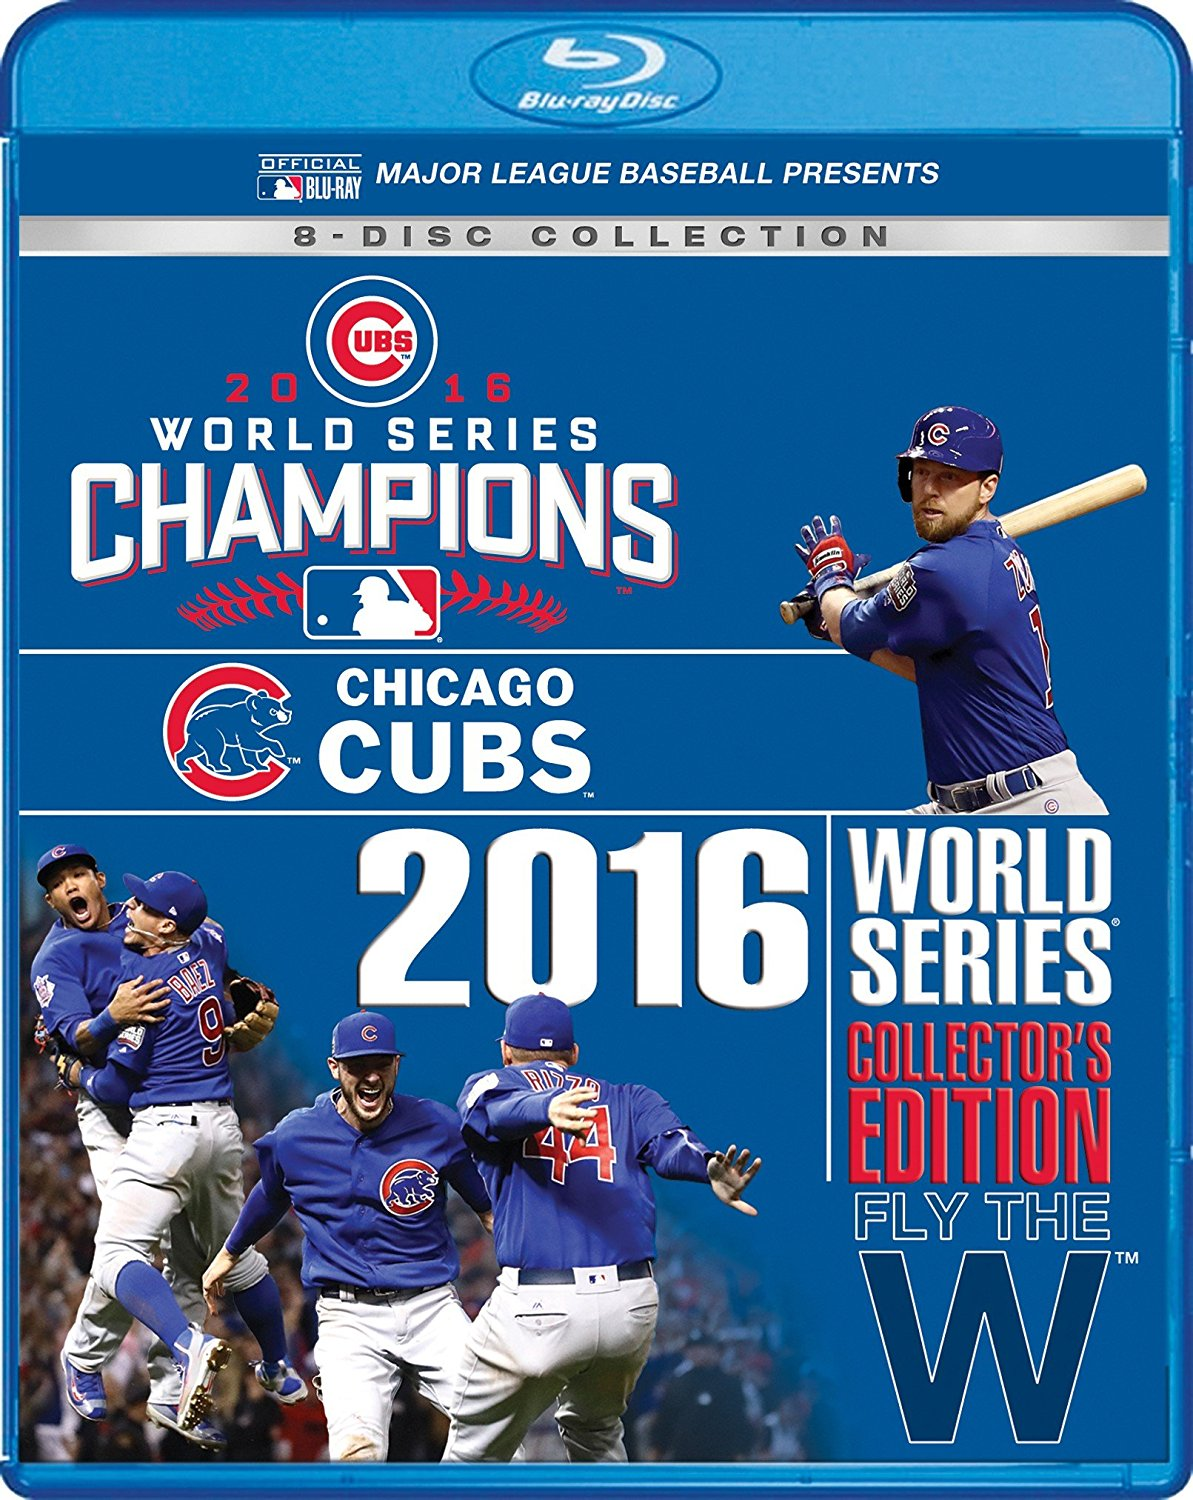 2016 World Series - Chicago Cubs 2016 World Series Collector's Edition